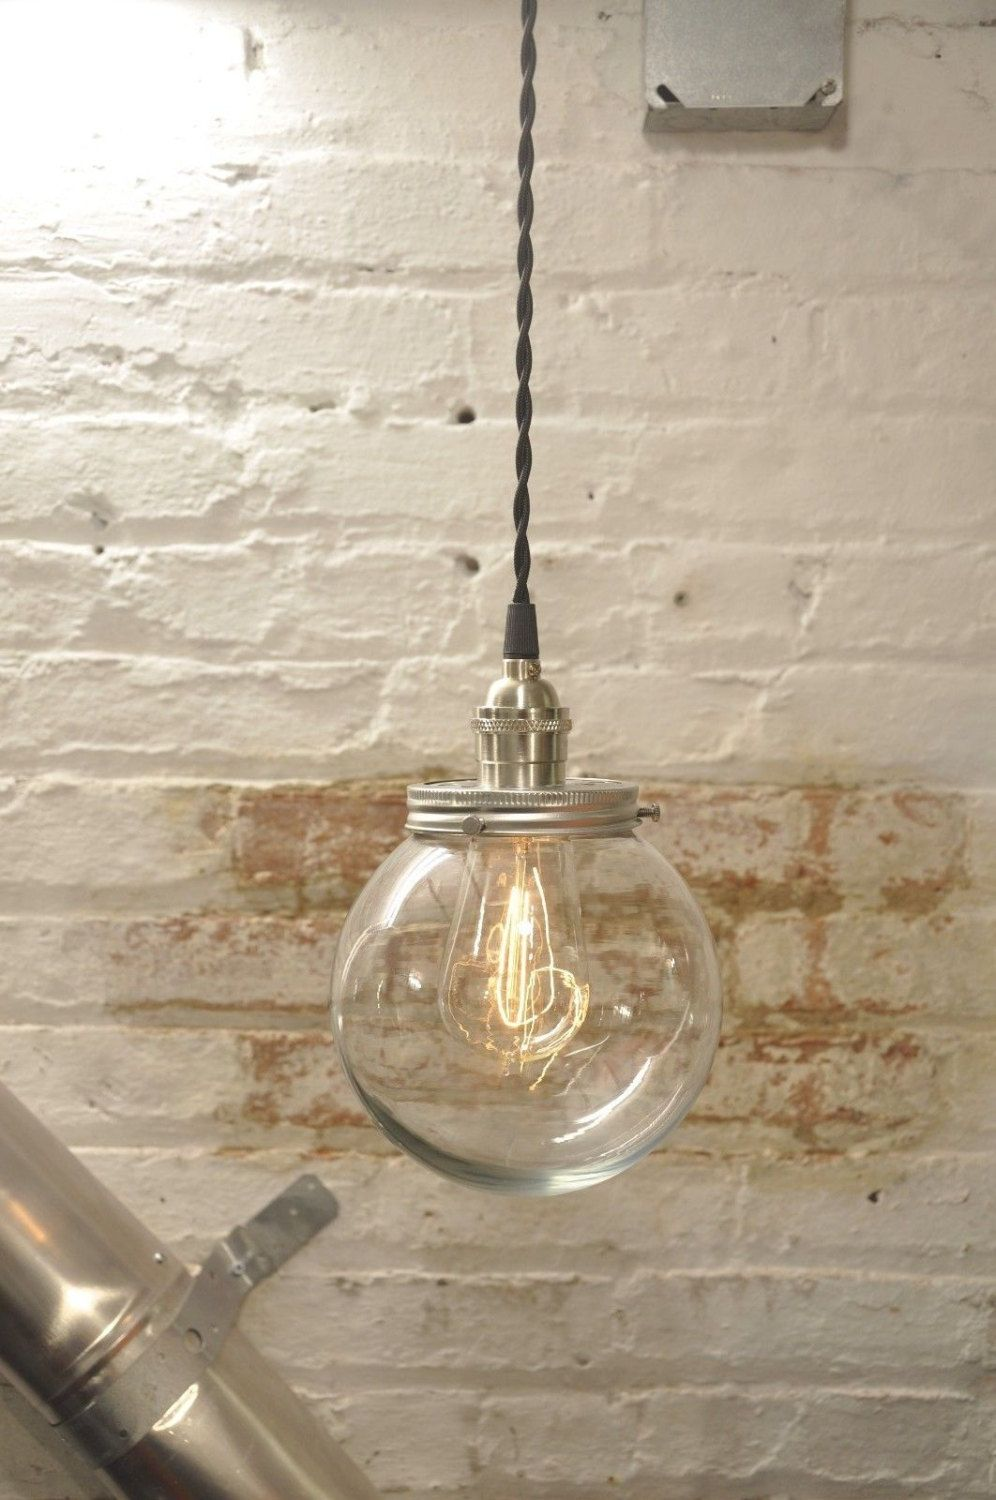 Glass globe pendant light fixture twisted wire vintage rustic high